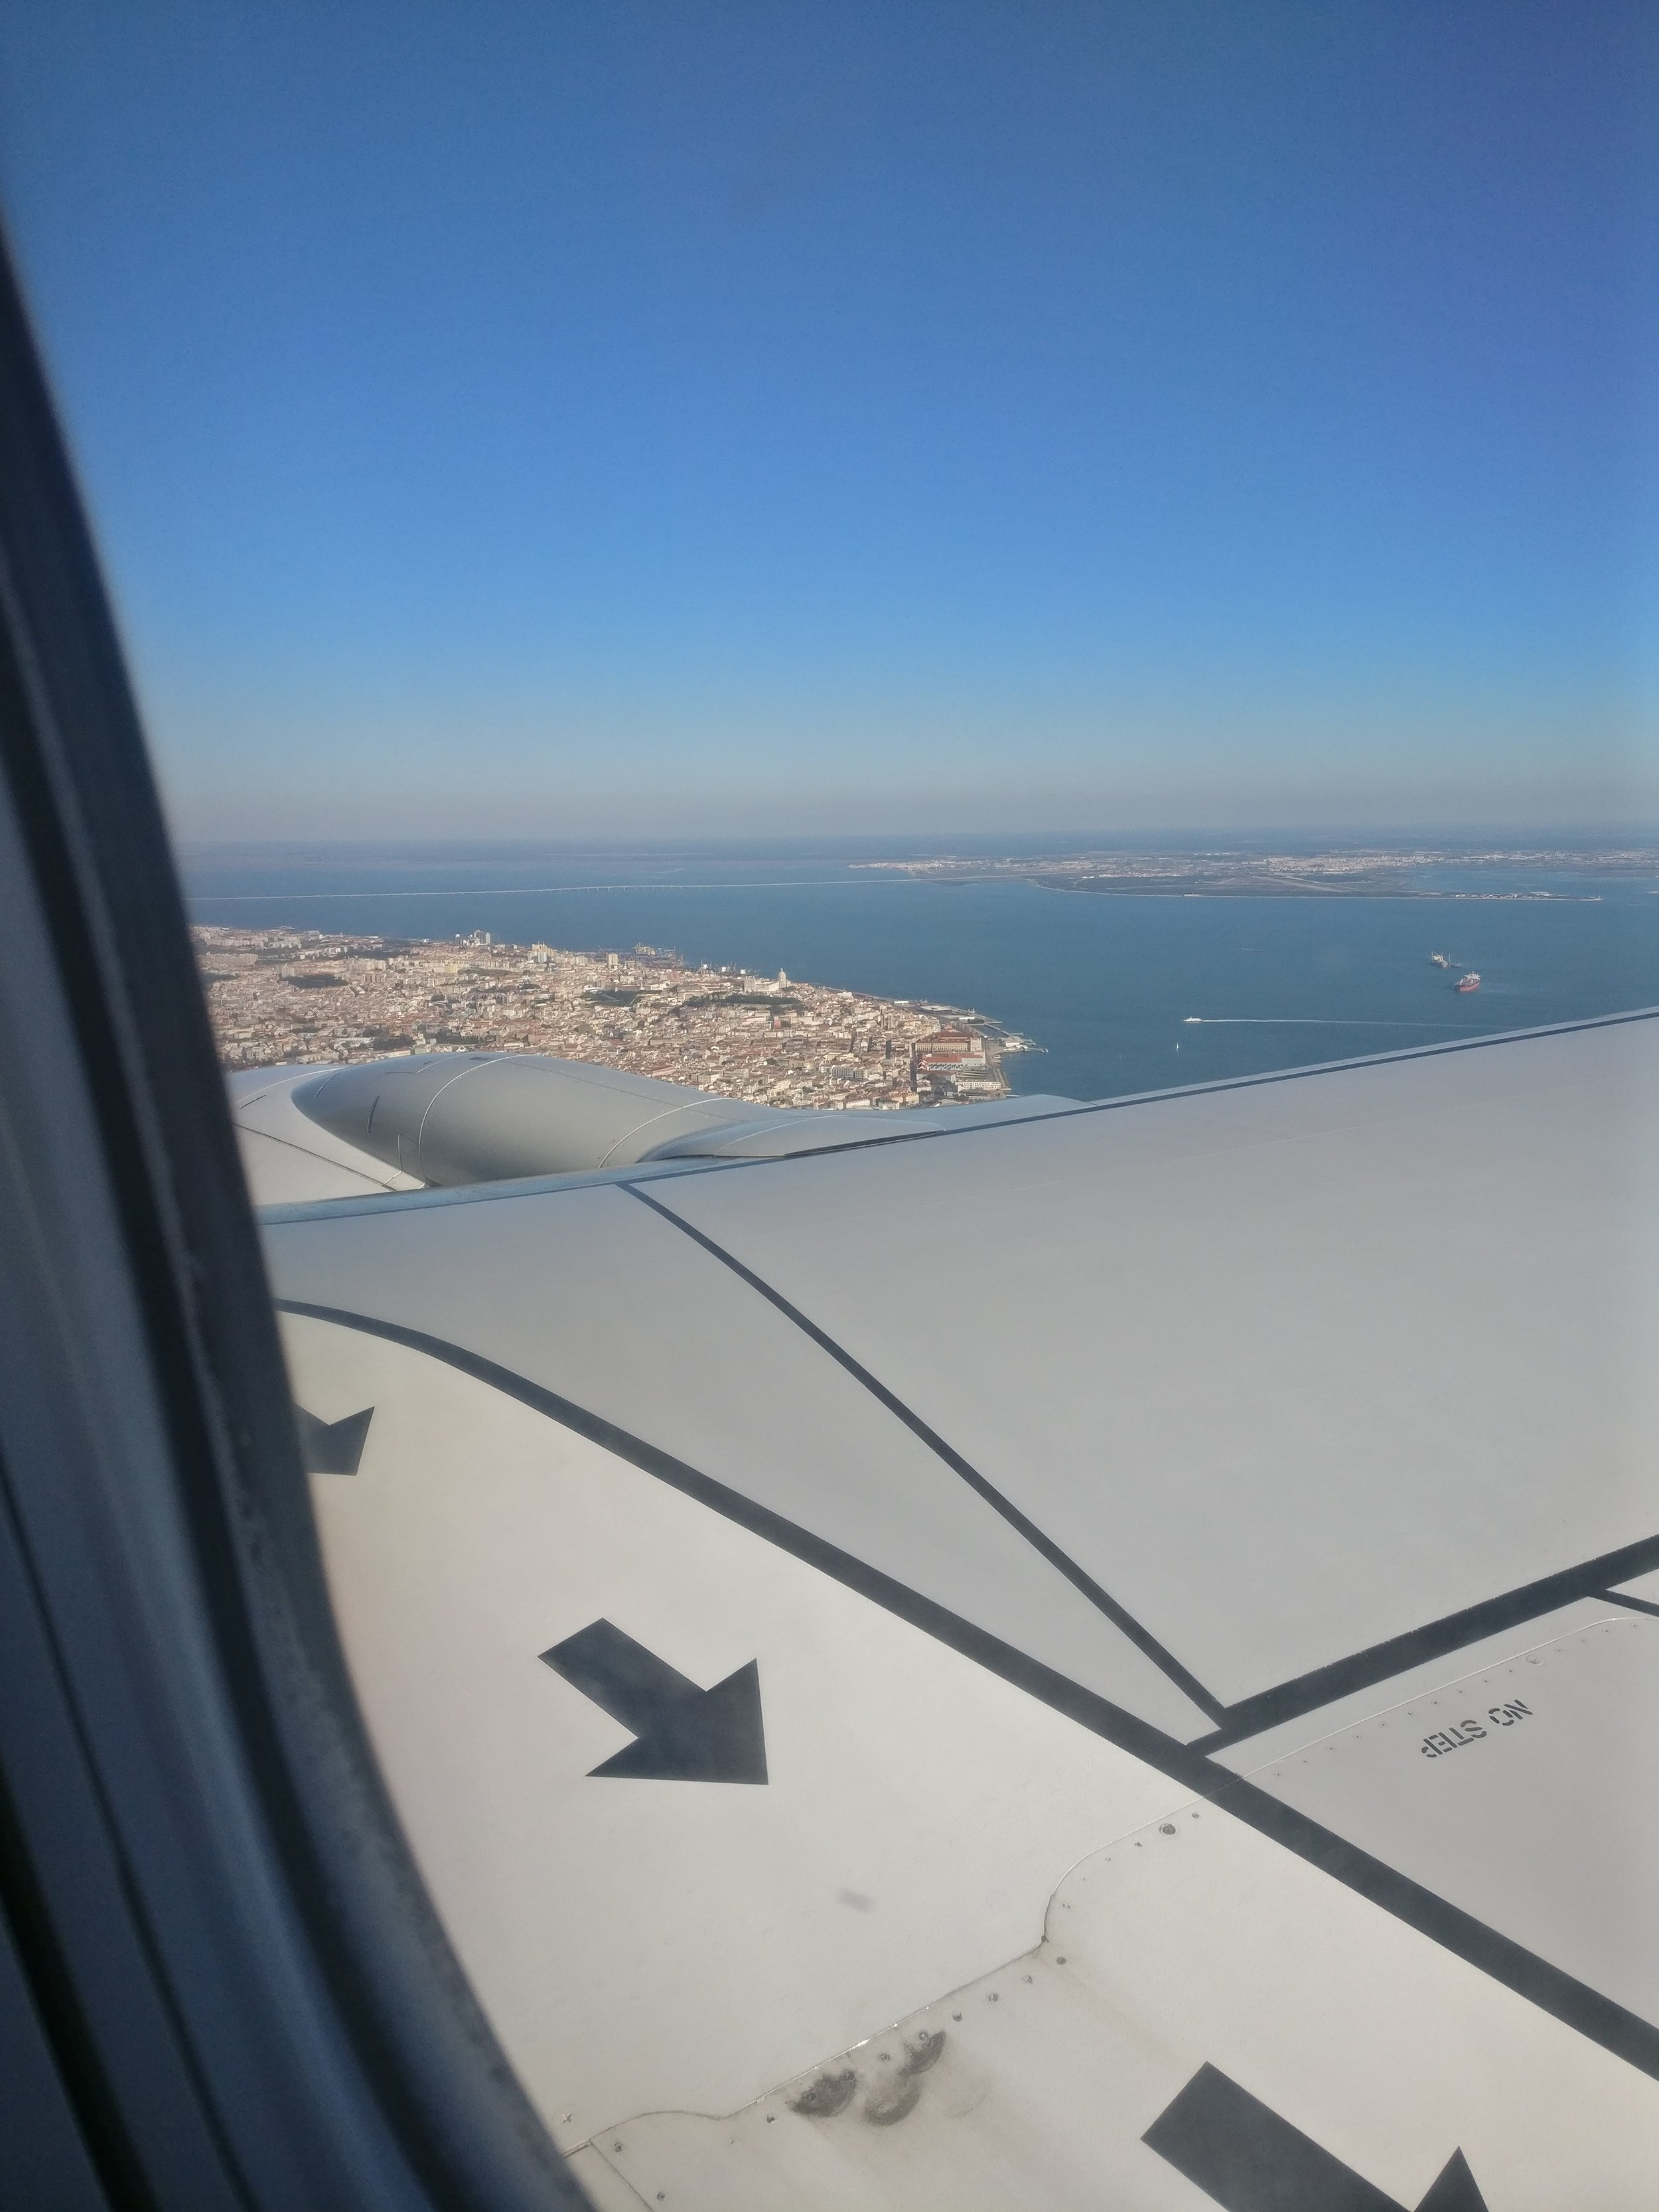 This is what it looks like to arrive in Lisbon in January